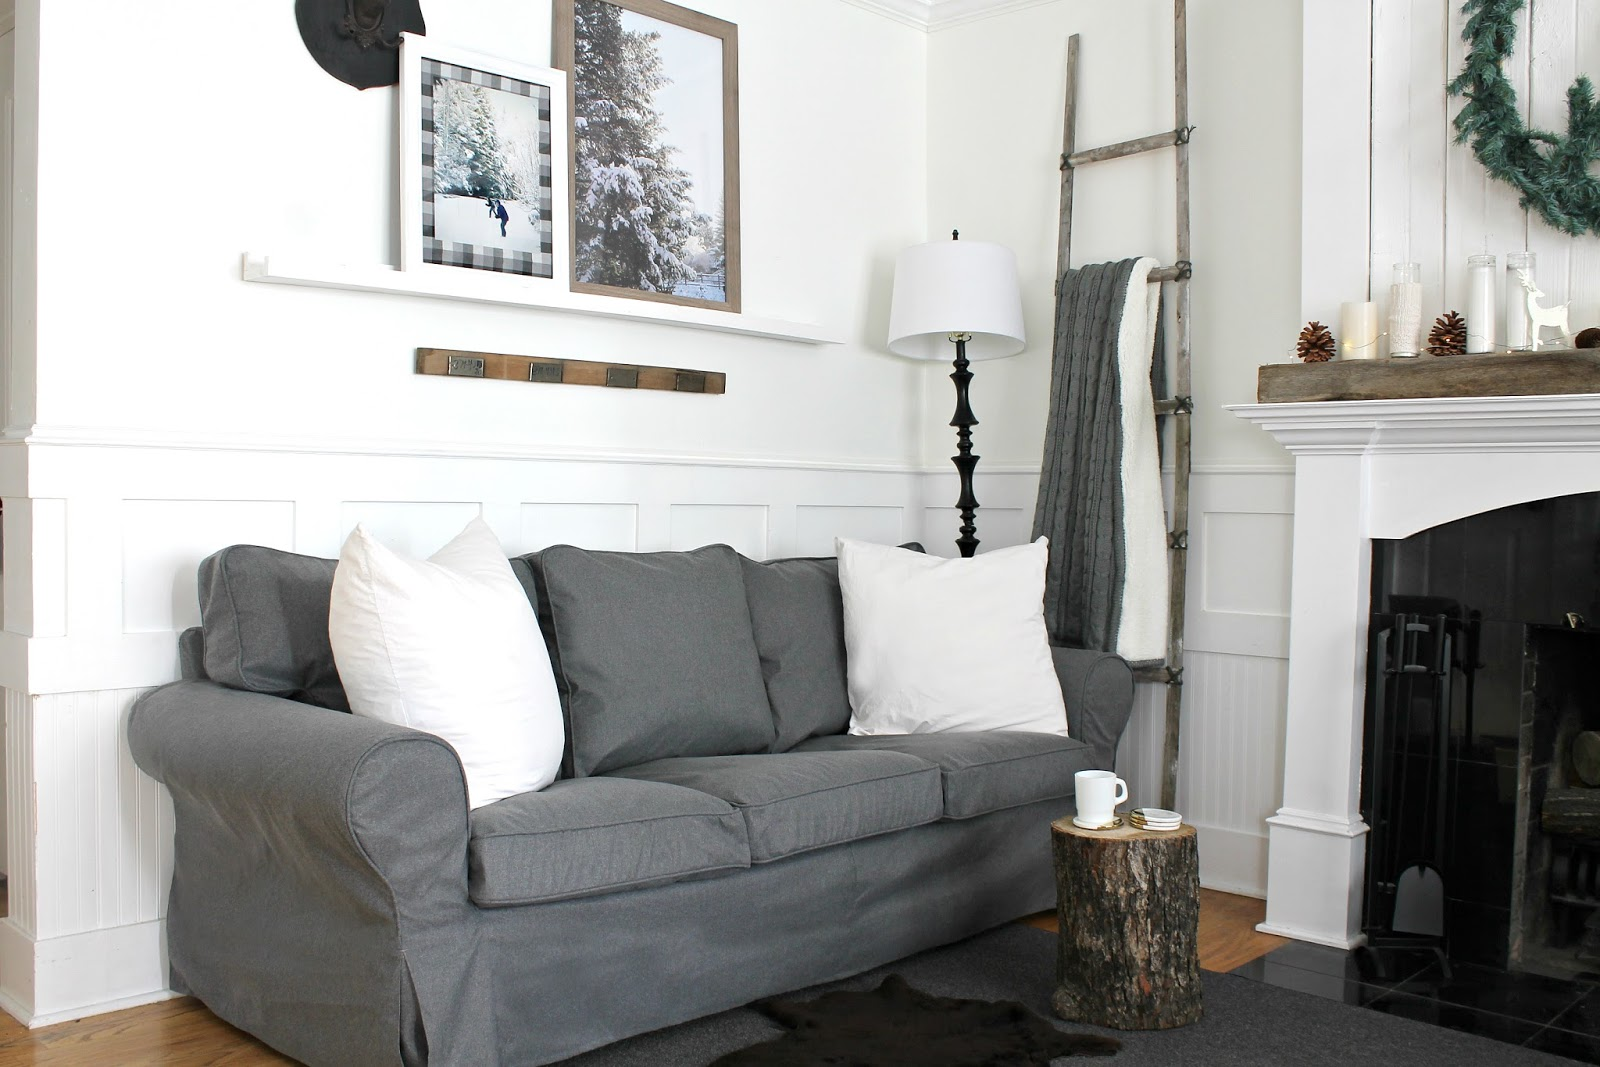 So If You Are Looking To Update Your Sofa, I Highly Recommend Comfort  Works. They Specialize In Making Slipcovers For Pottery Barn And Ikea Sofas,  ...